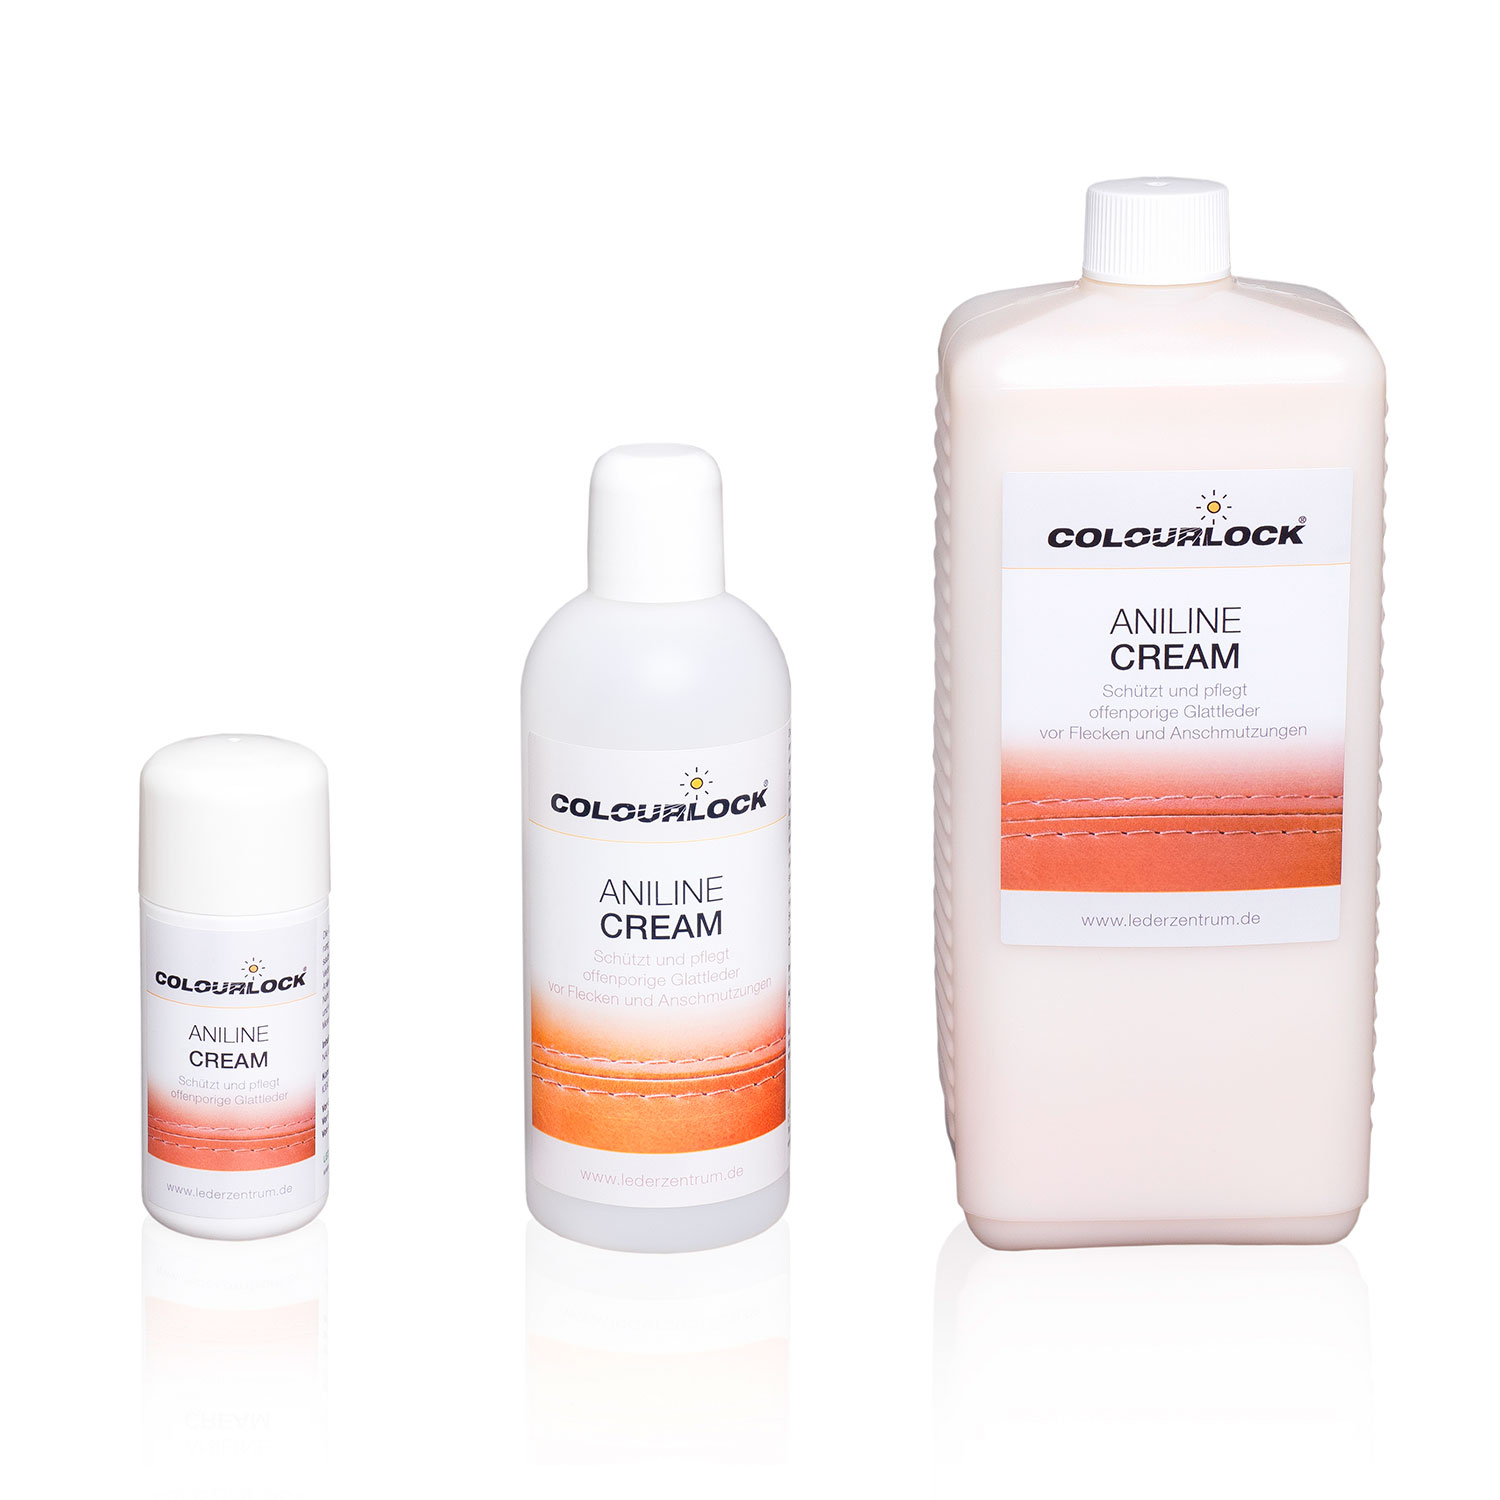 COLOURLOCK Aniline Cream, 250 ml